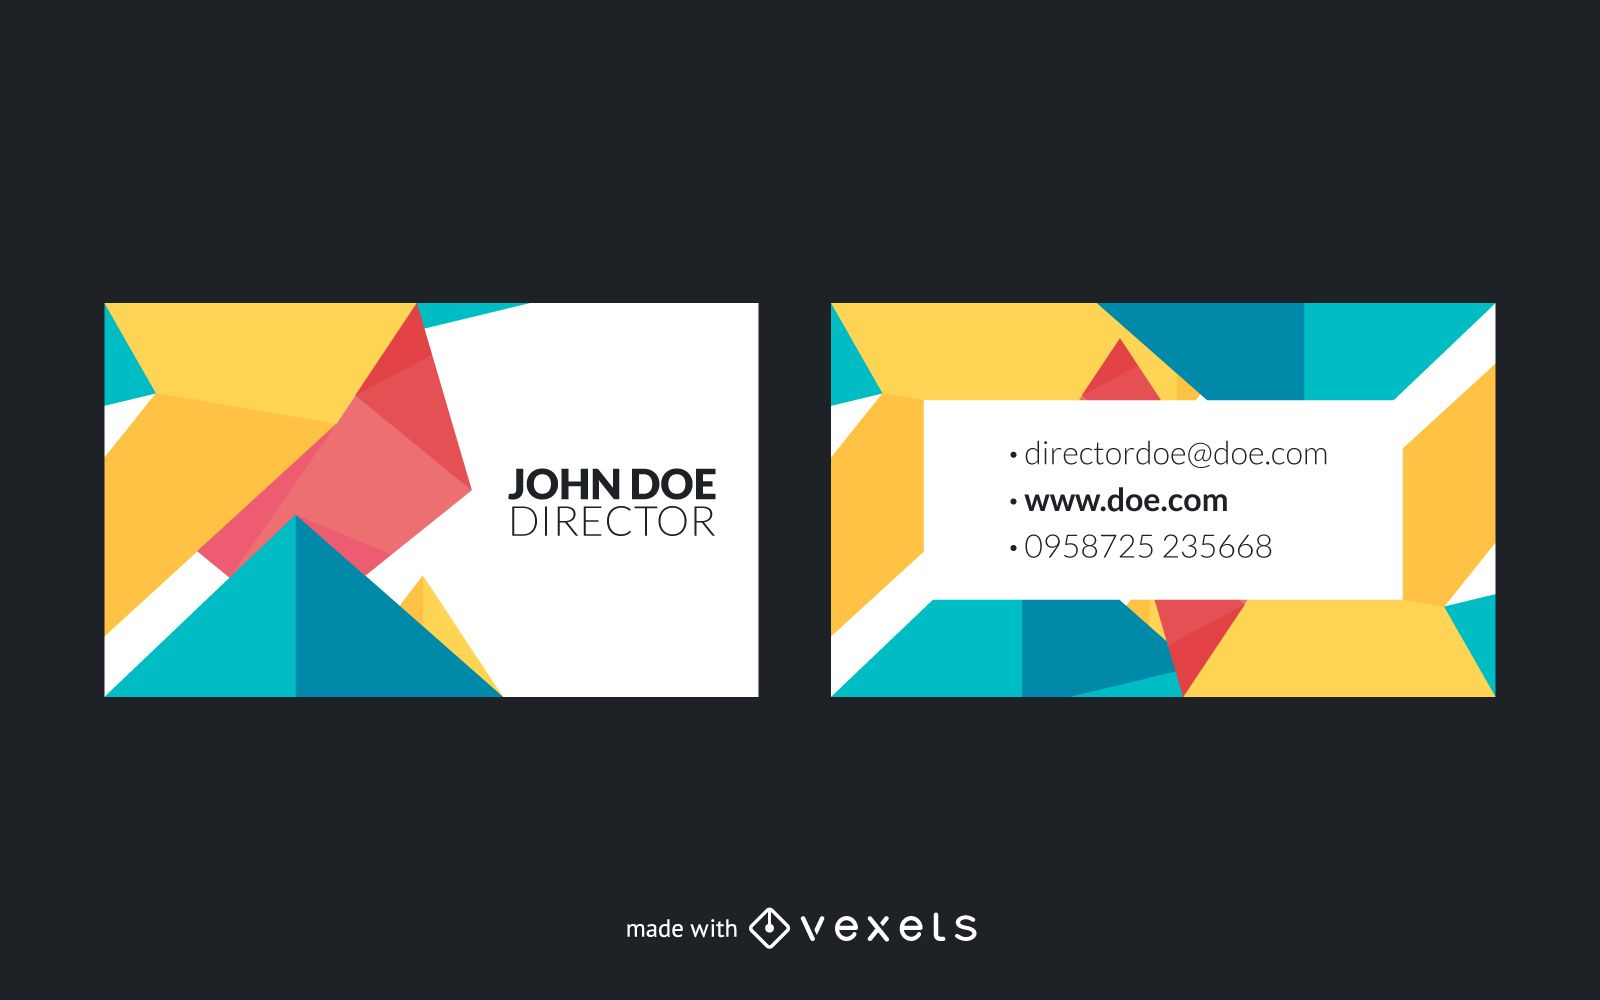 Polygonal business card maker - Editable design